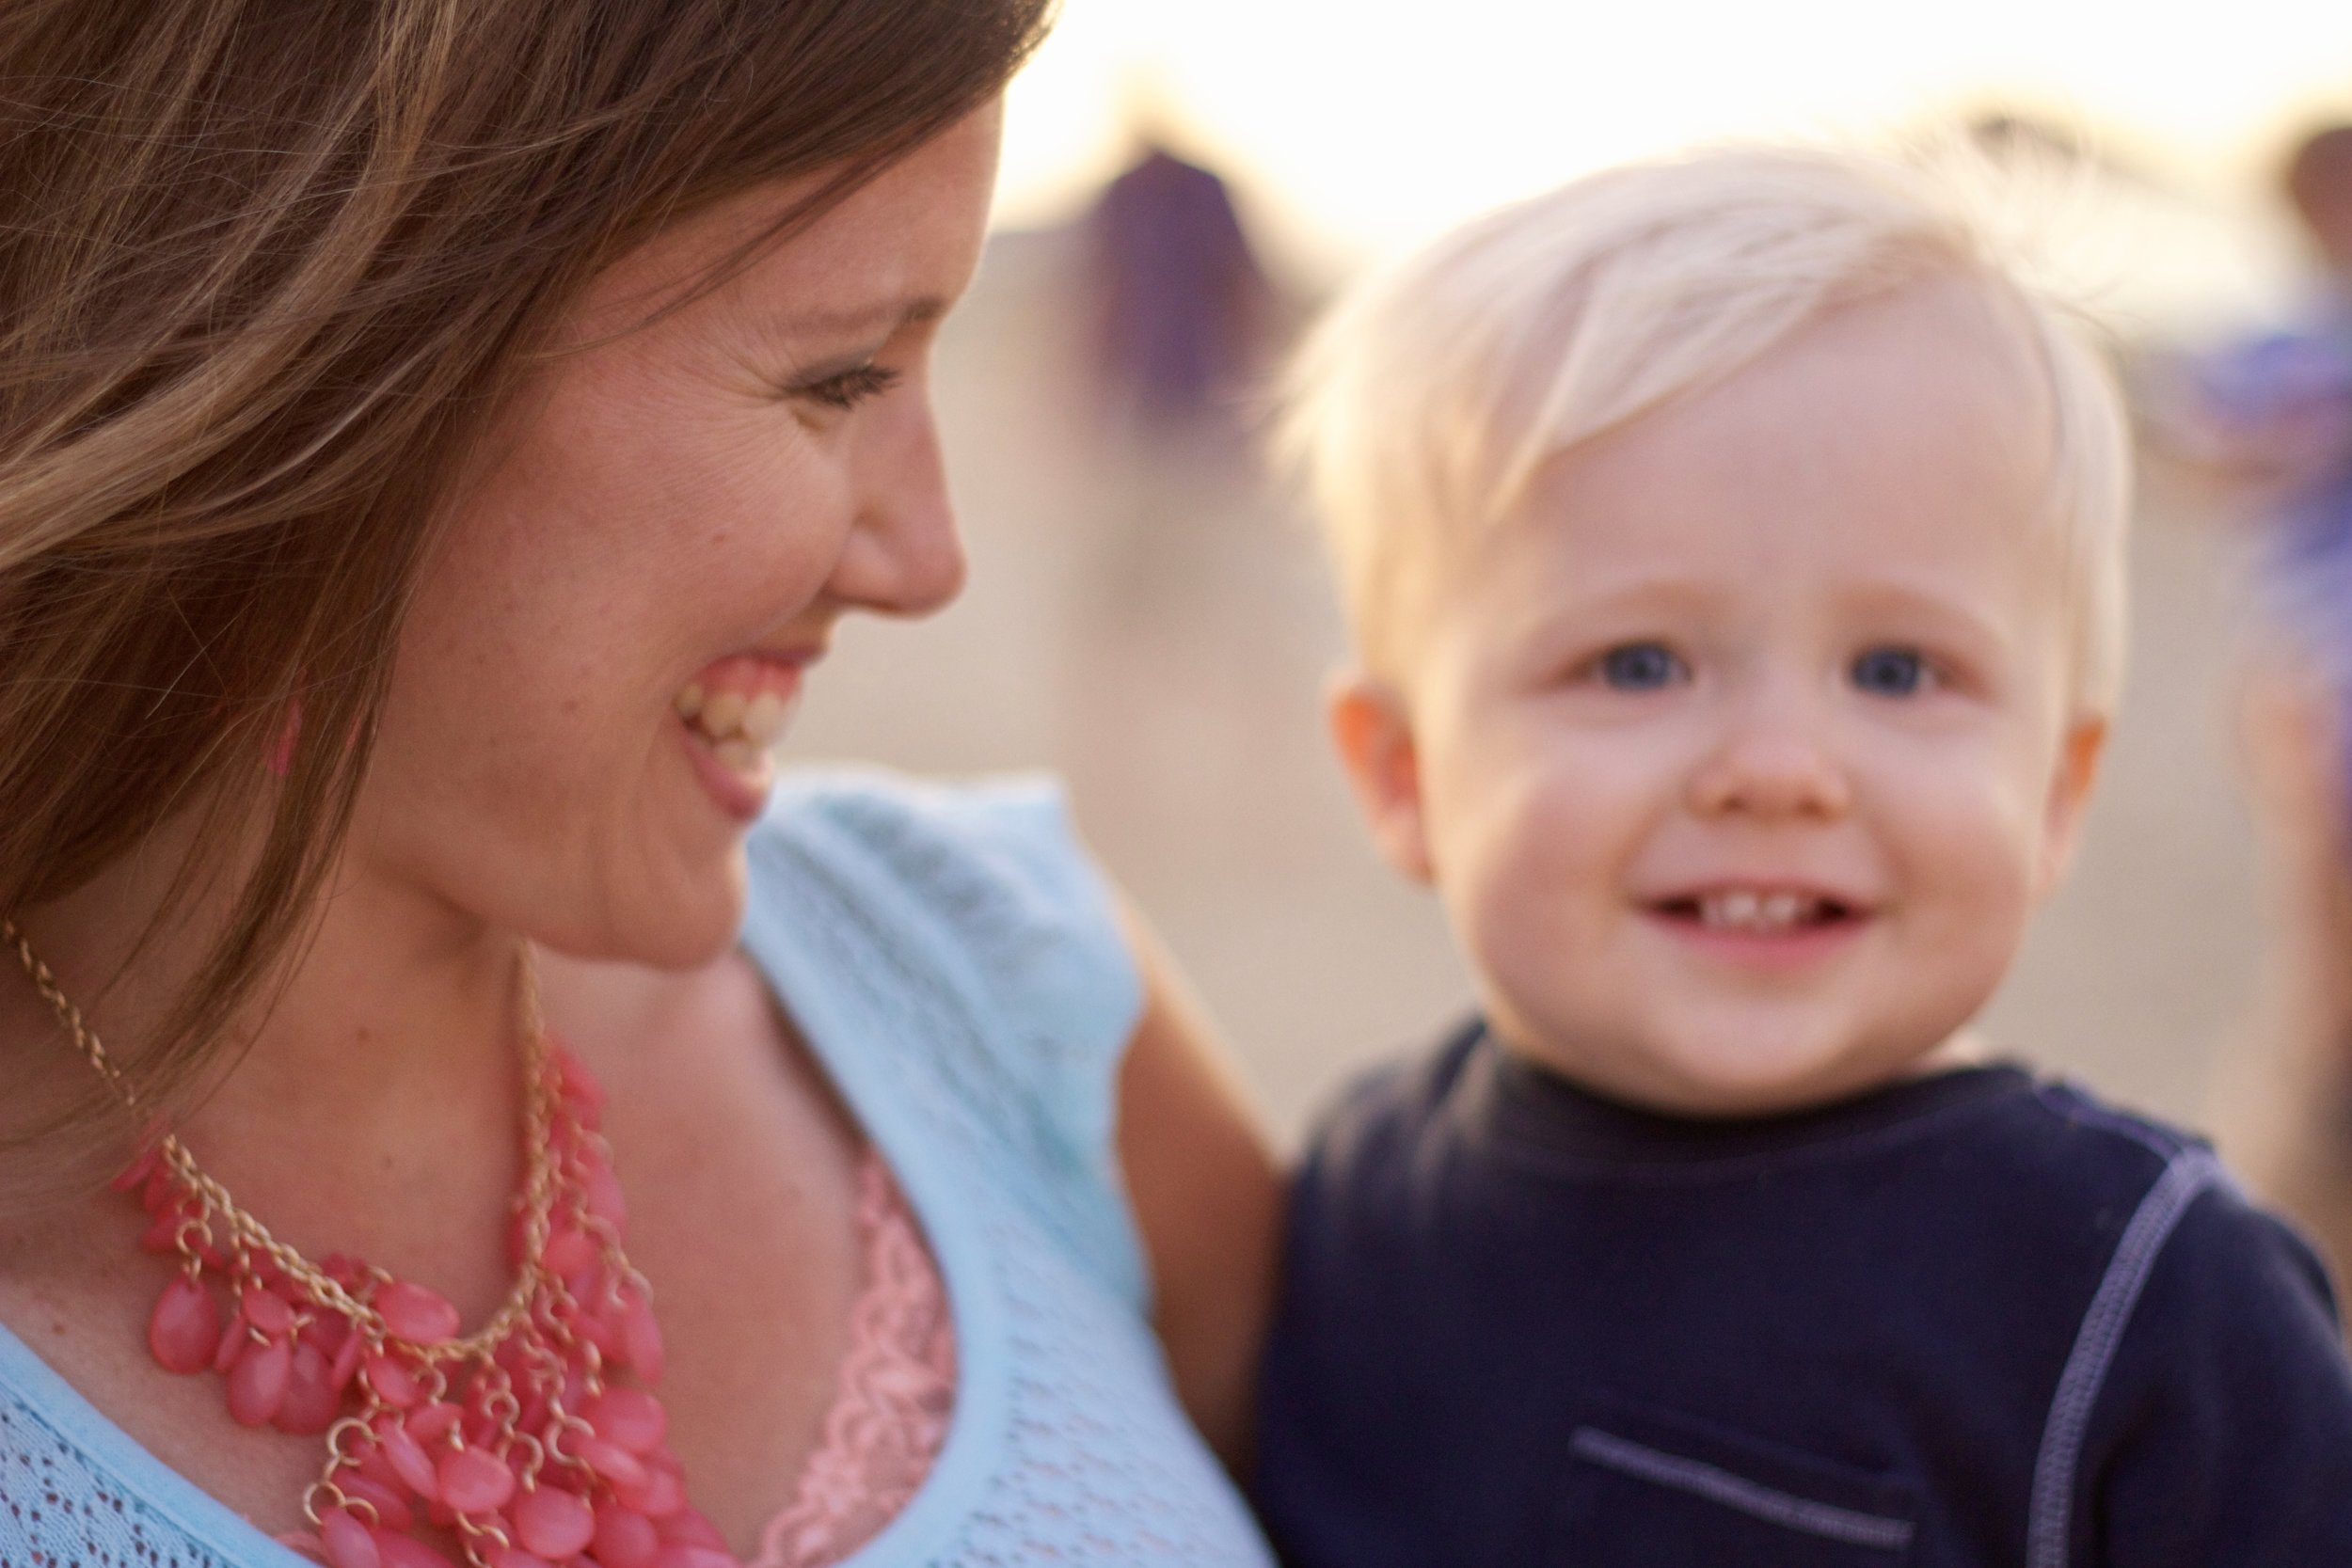 Choosing to see my baby's sweet face -a favorite memory from when he was just a toddler